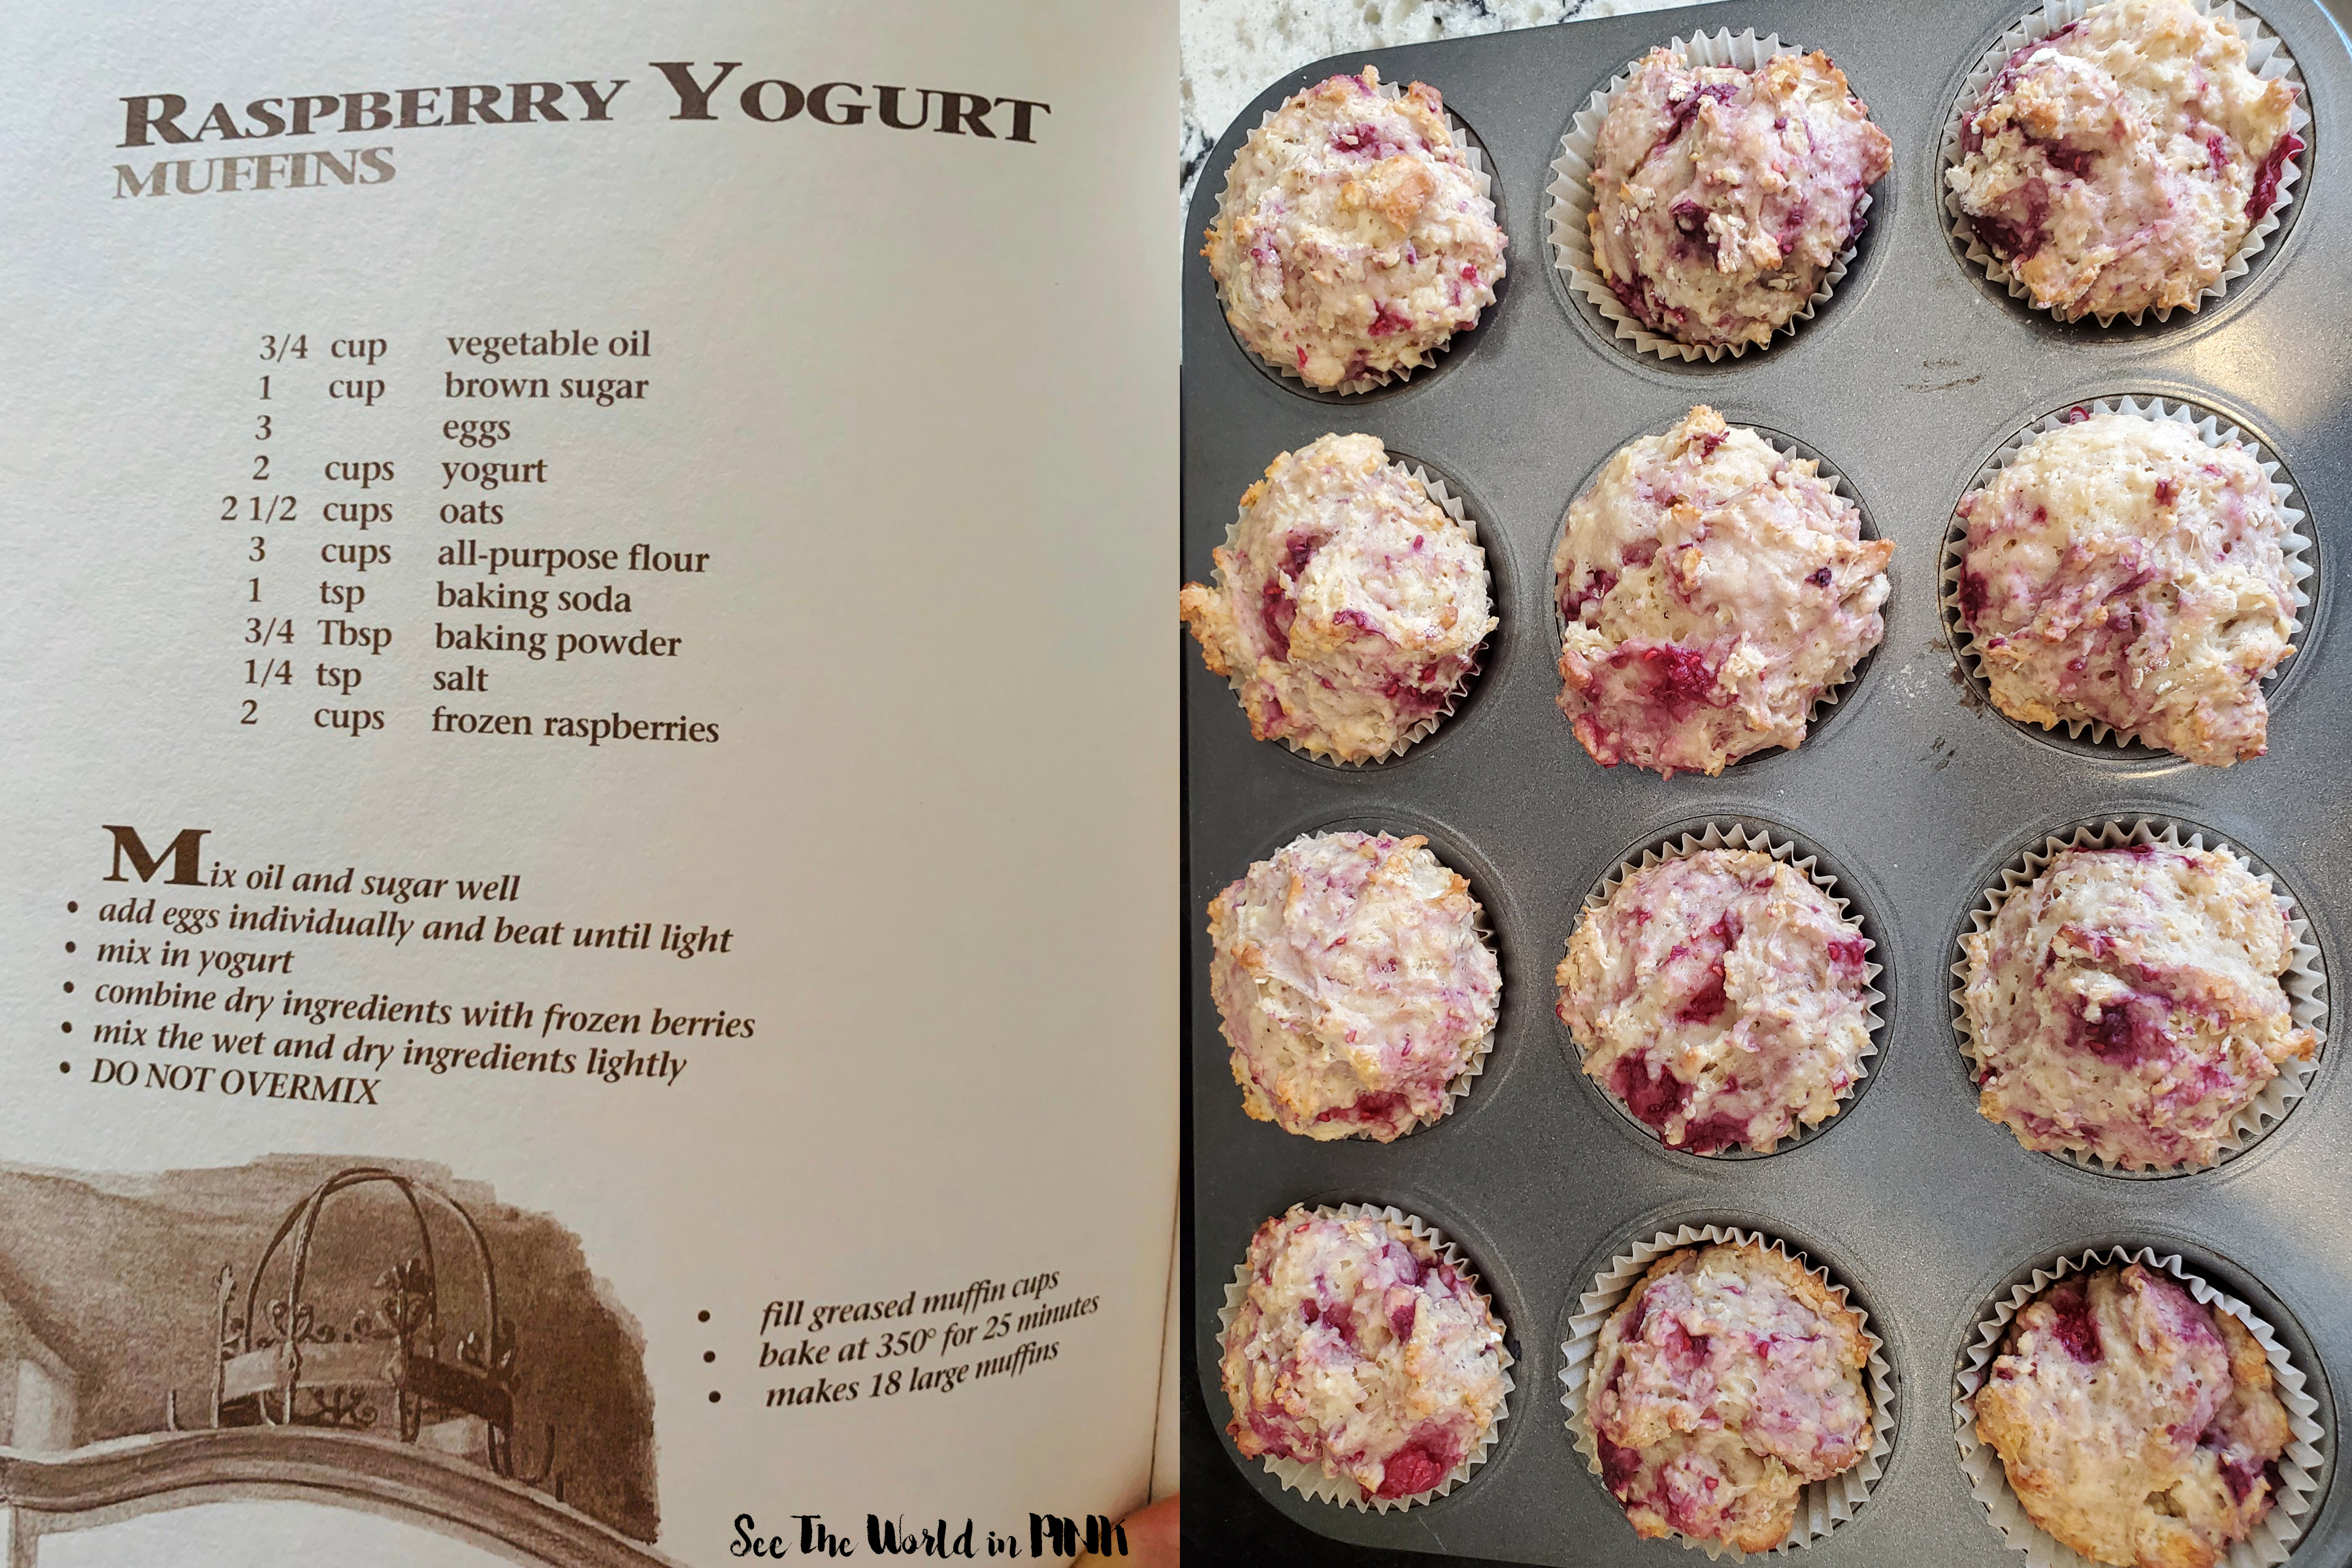 Heartland Cafe Raspberry Yogurt Muffins